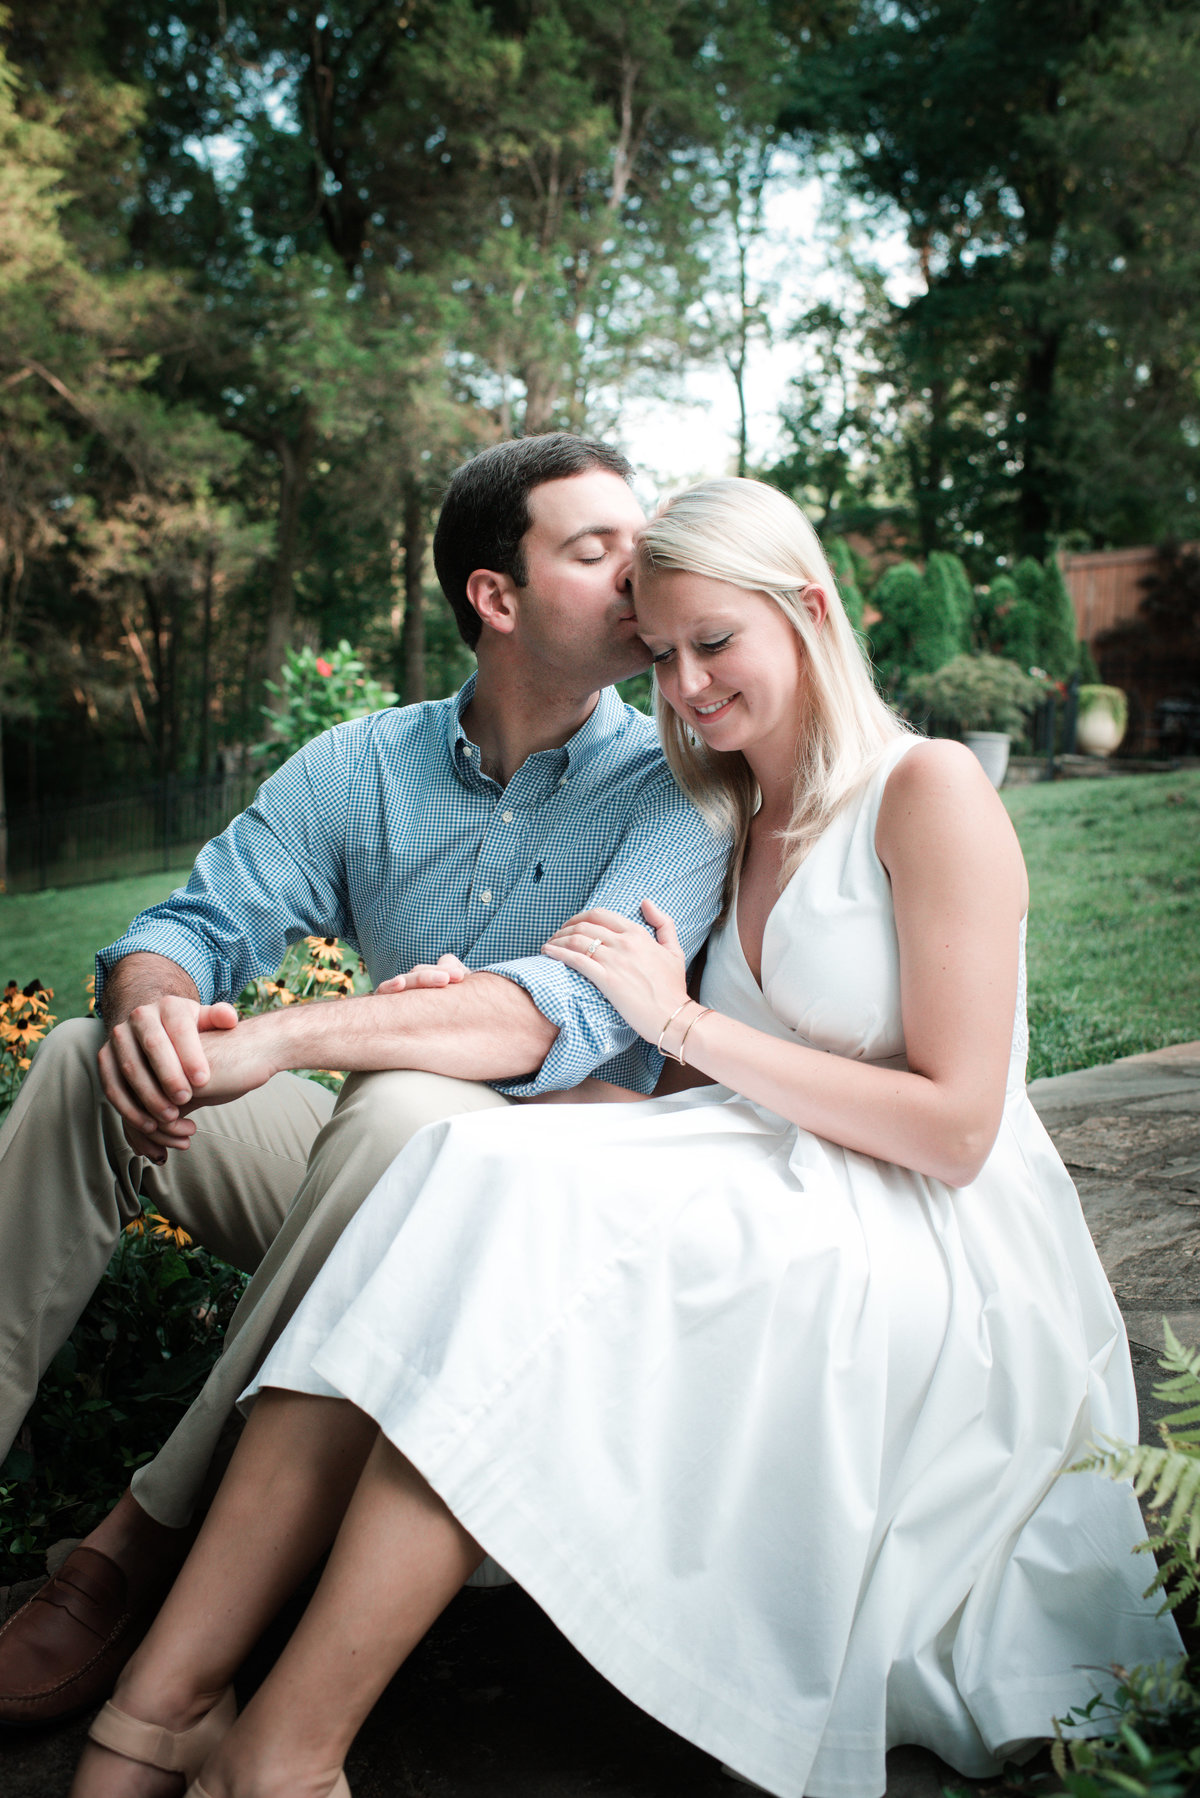 Tennessee Wedding Photographer - Mint Magnolia Photography353